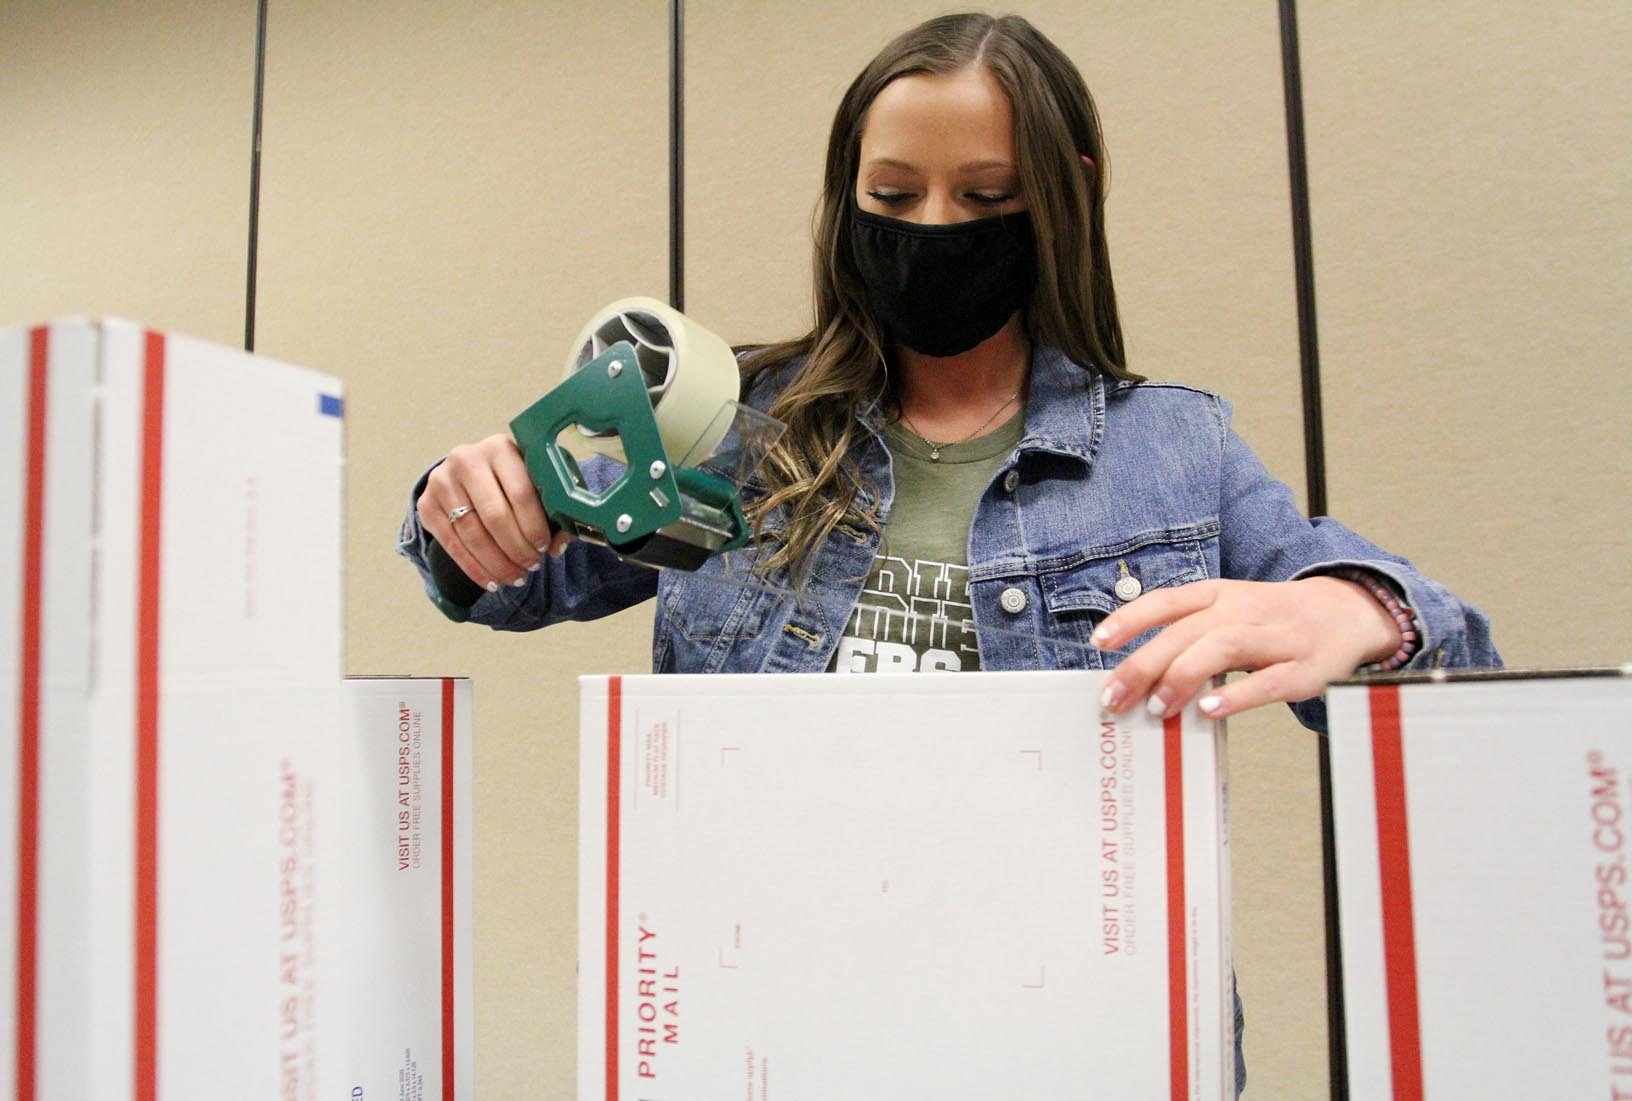 Rylee Schneider of Lincoln, a member of UNK's Alpha Omicron Pi sorority, prepares care packages for shipping Tuesday evening during the Sisters for Soldiers event. Alpha Omicron Pi is sending 451 holiday packages to U.S. military members serving overseas.